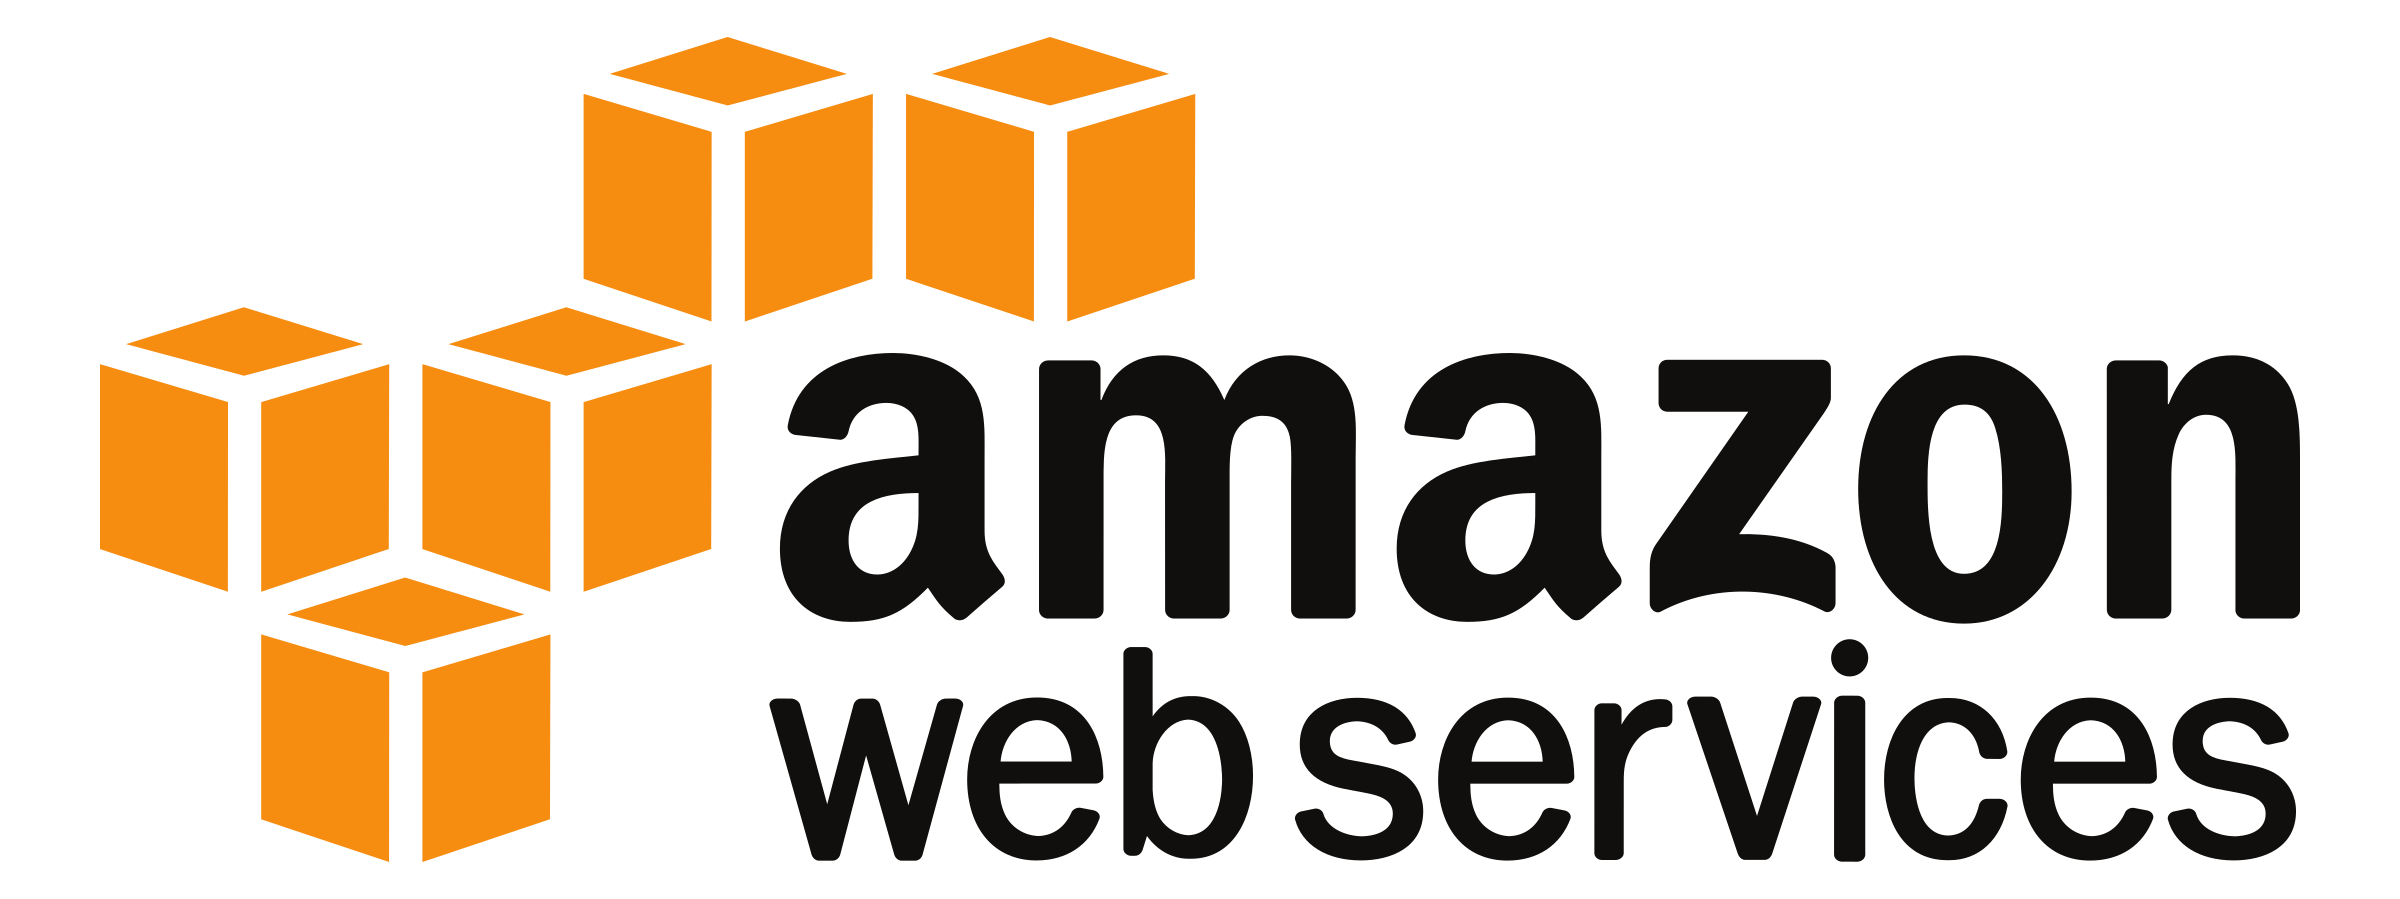 What is AWS? - Amazon Web Services